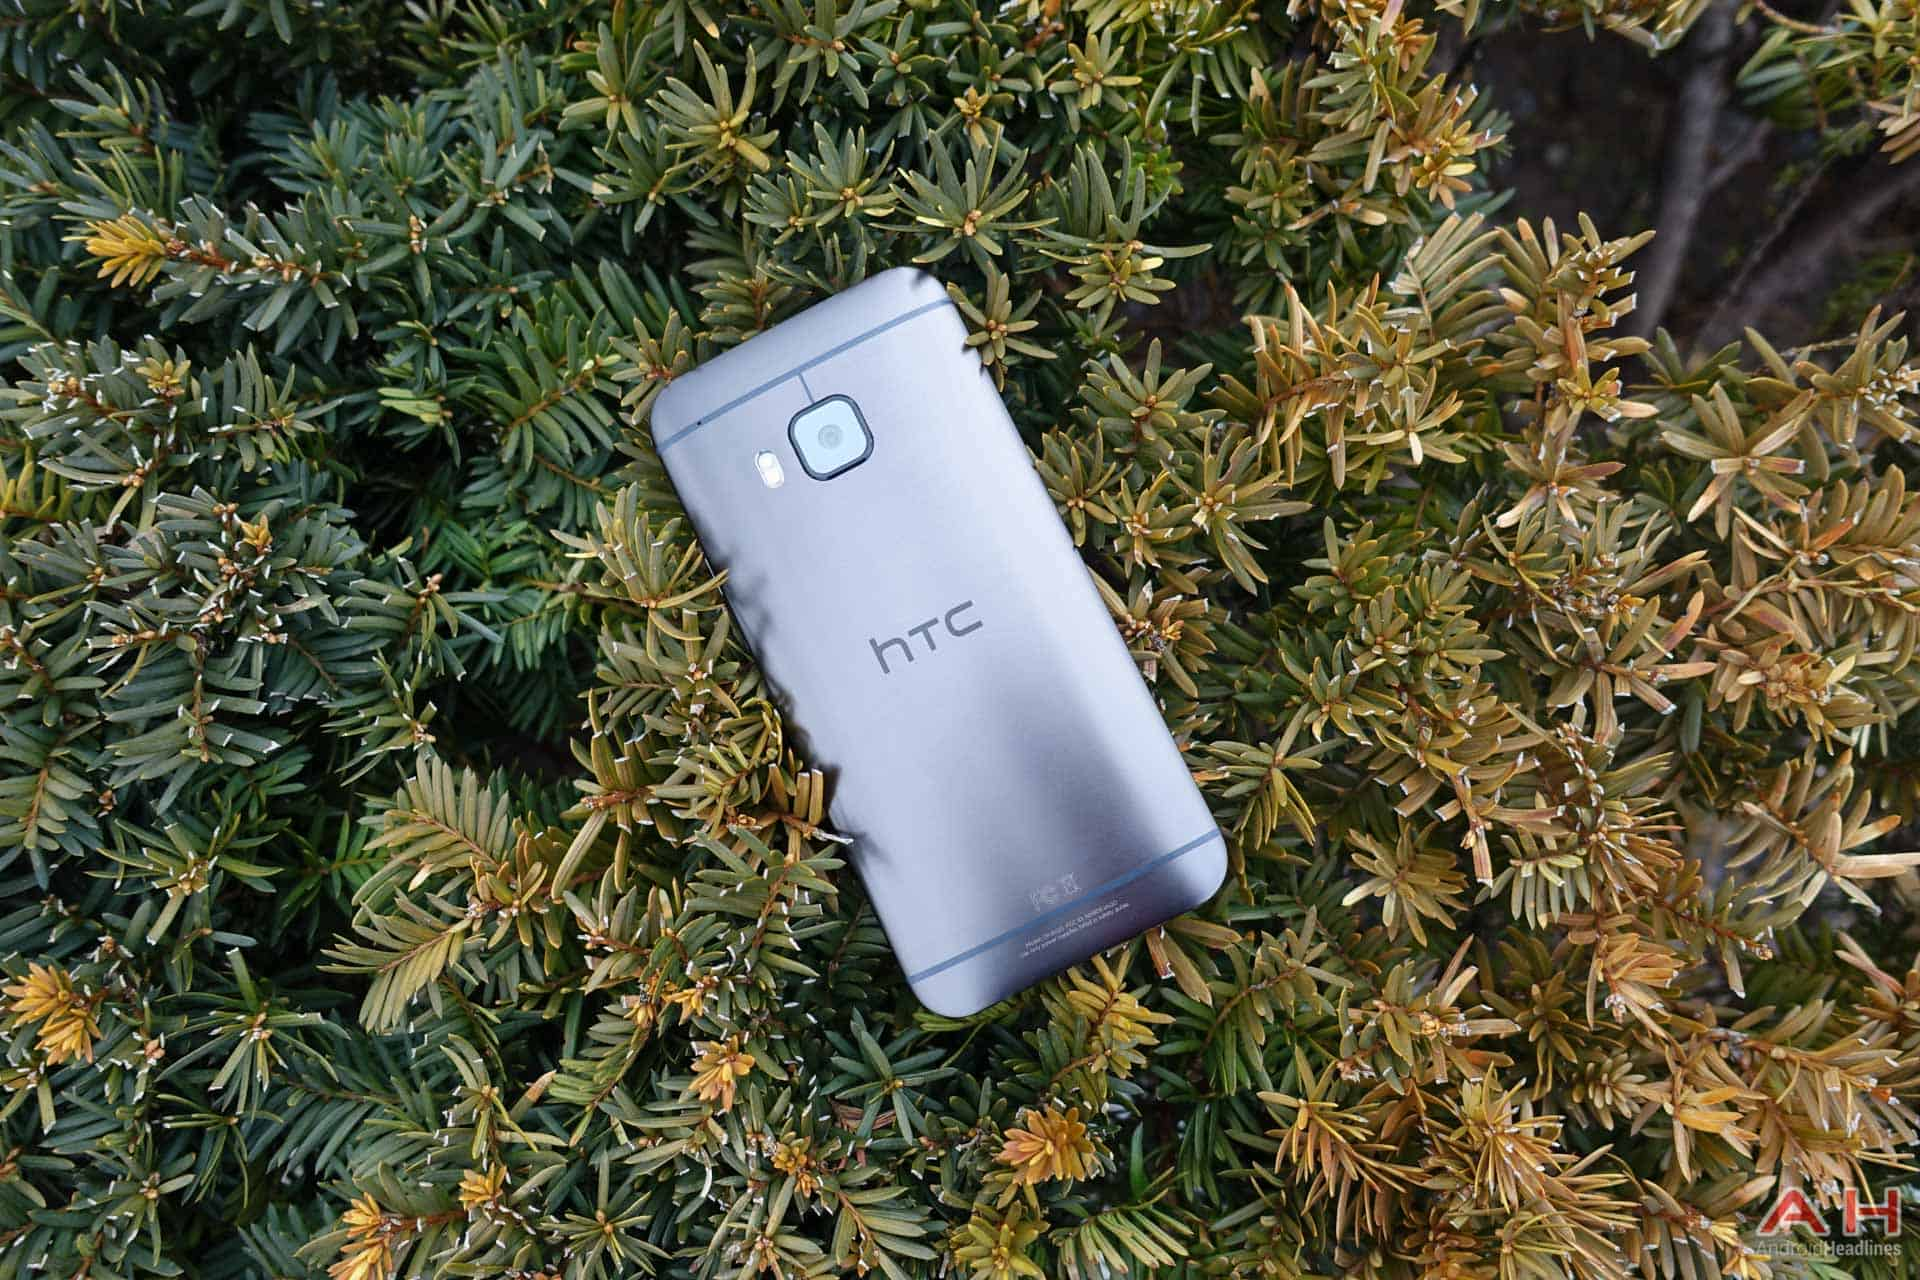 HTC-One-M9-Review-AH-57